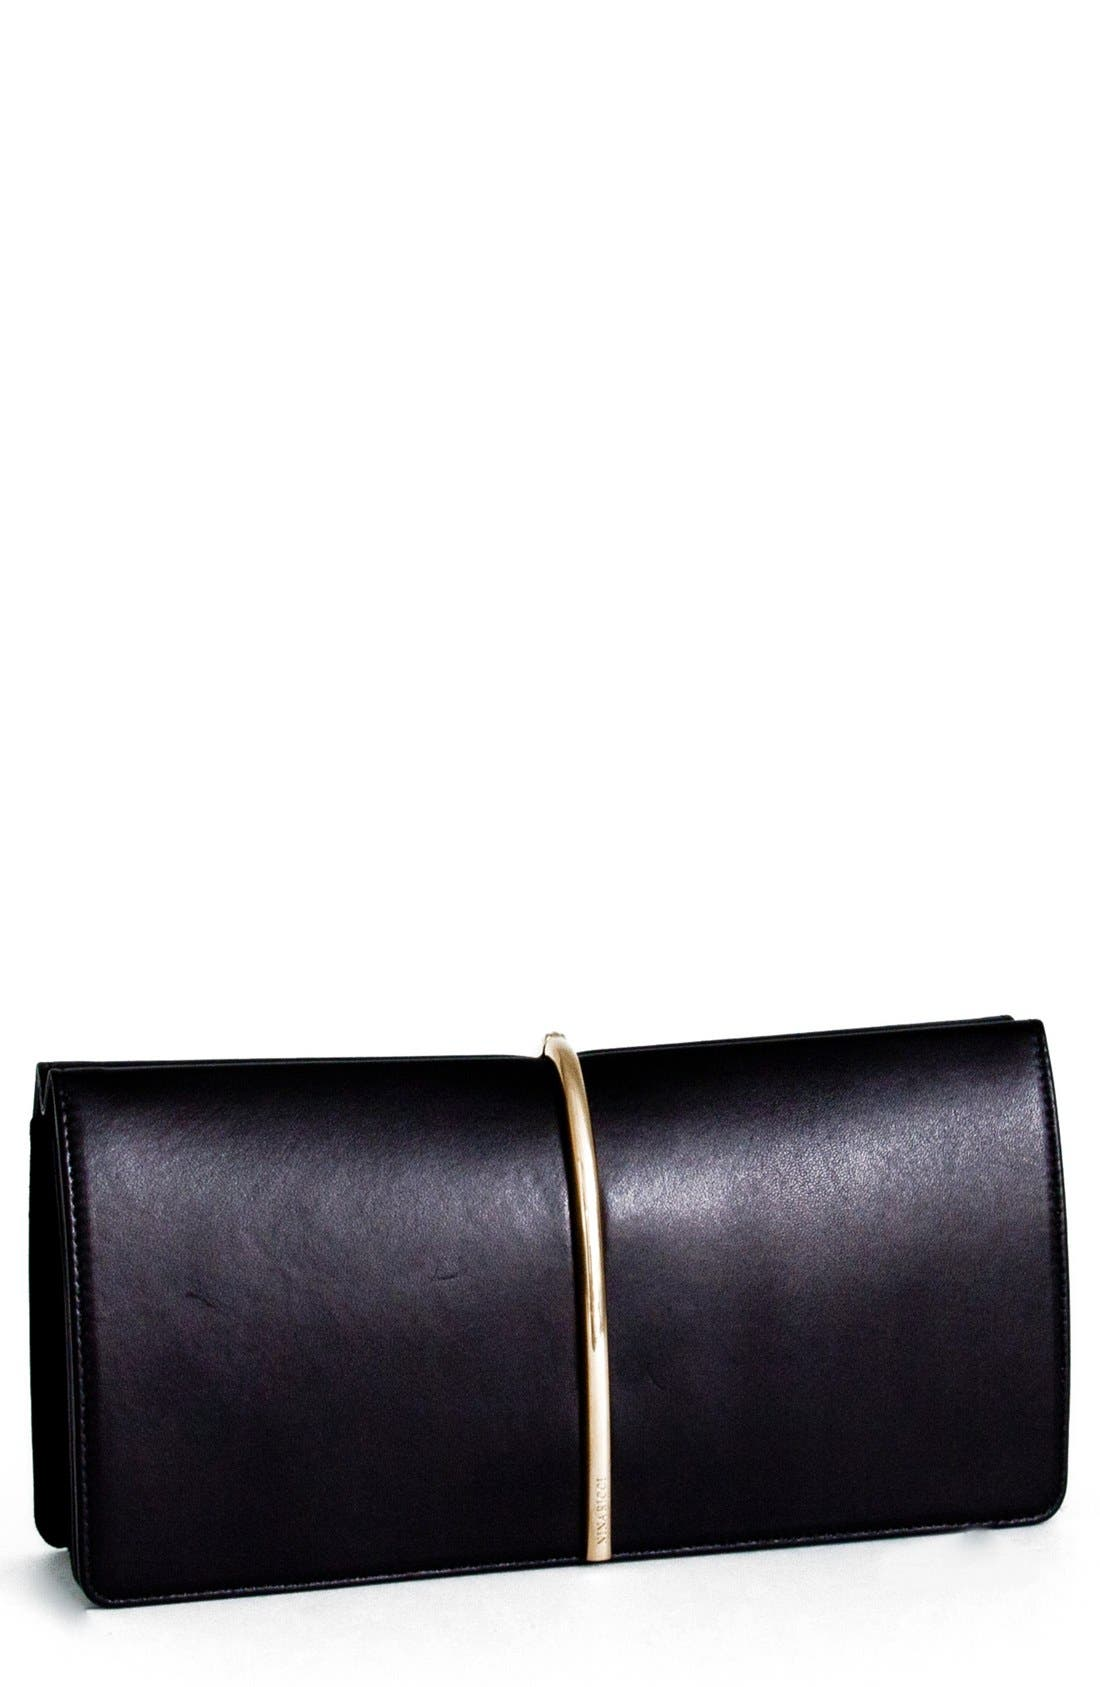 Alternate Image 1 Selected - Nina Ricci 'Arc' Leather Clutch